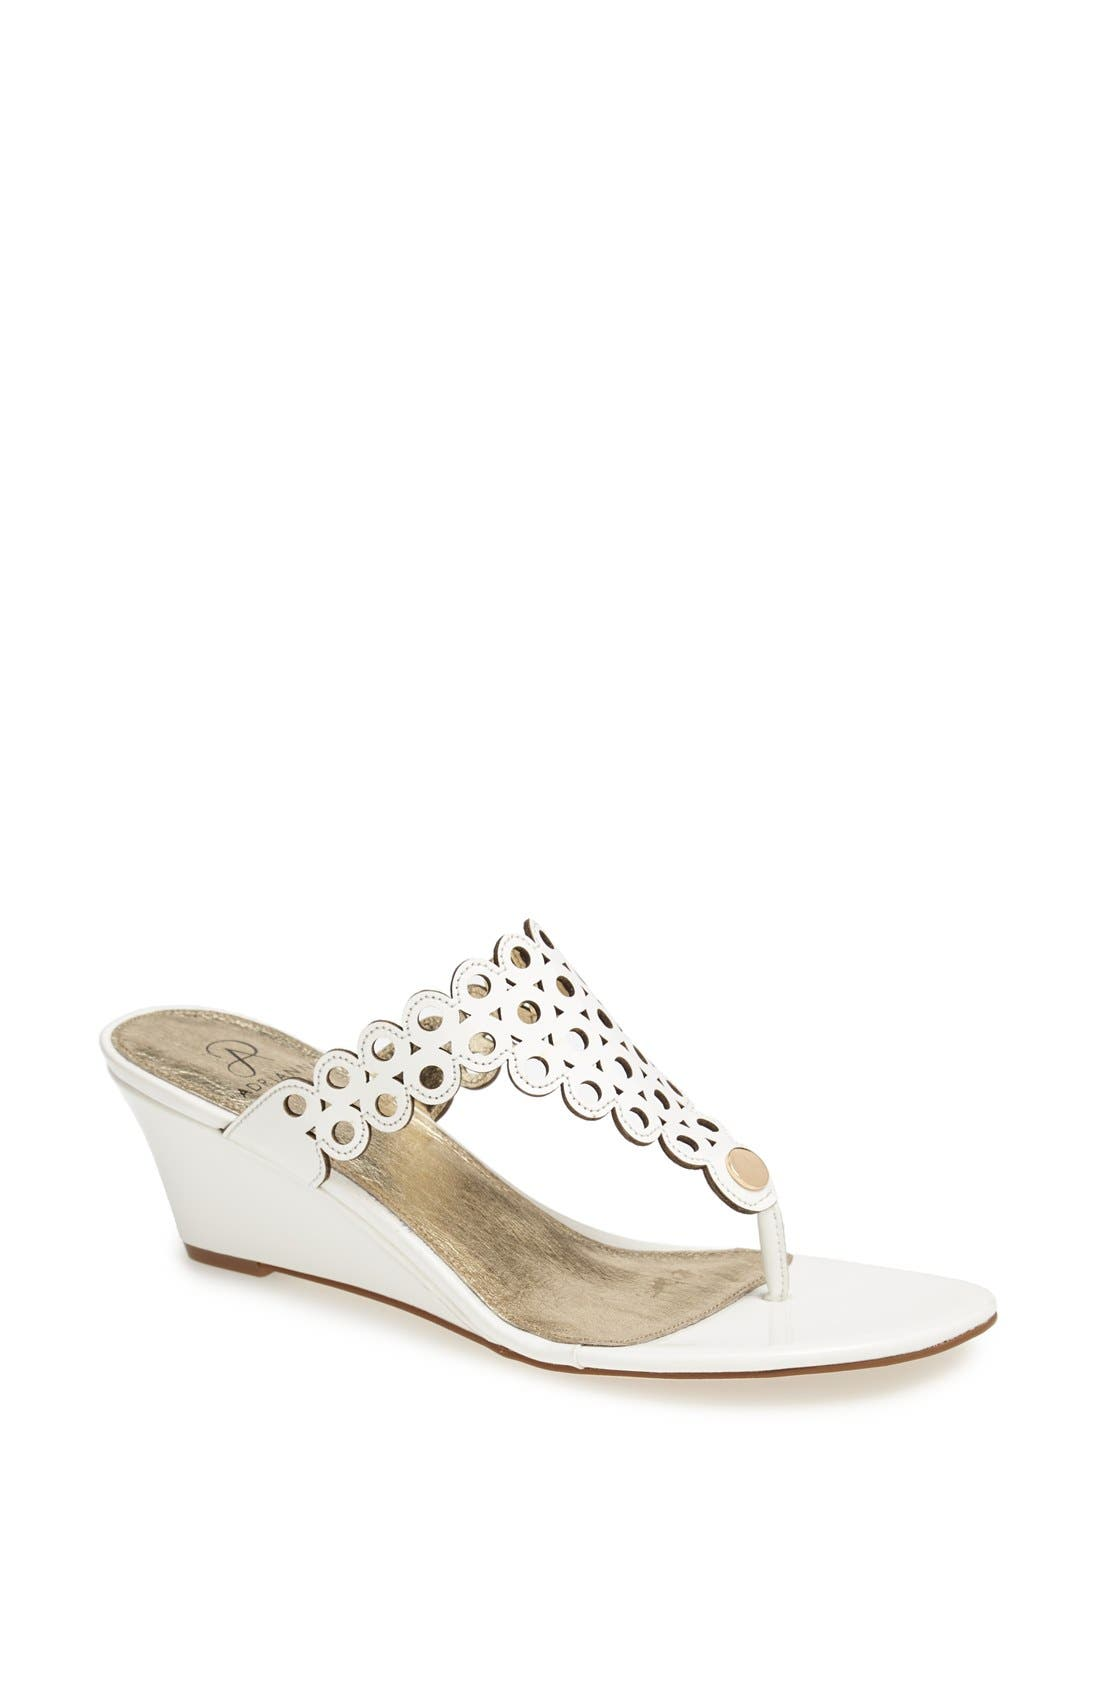 Alternate Image 1 Selected - Adrianna Papell 'Calais' Wedge Sandal